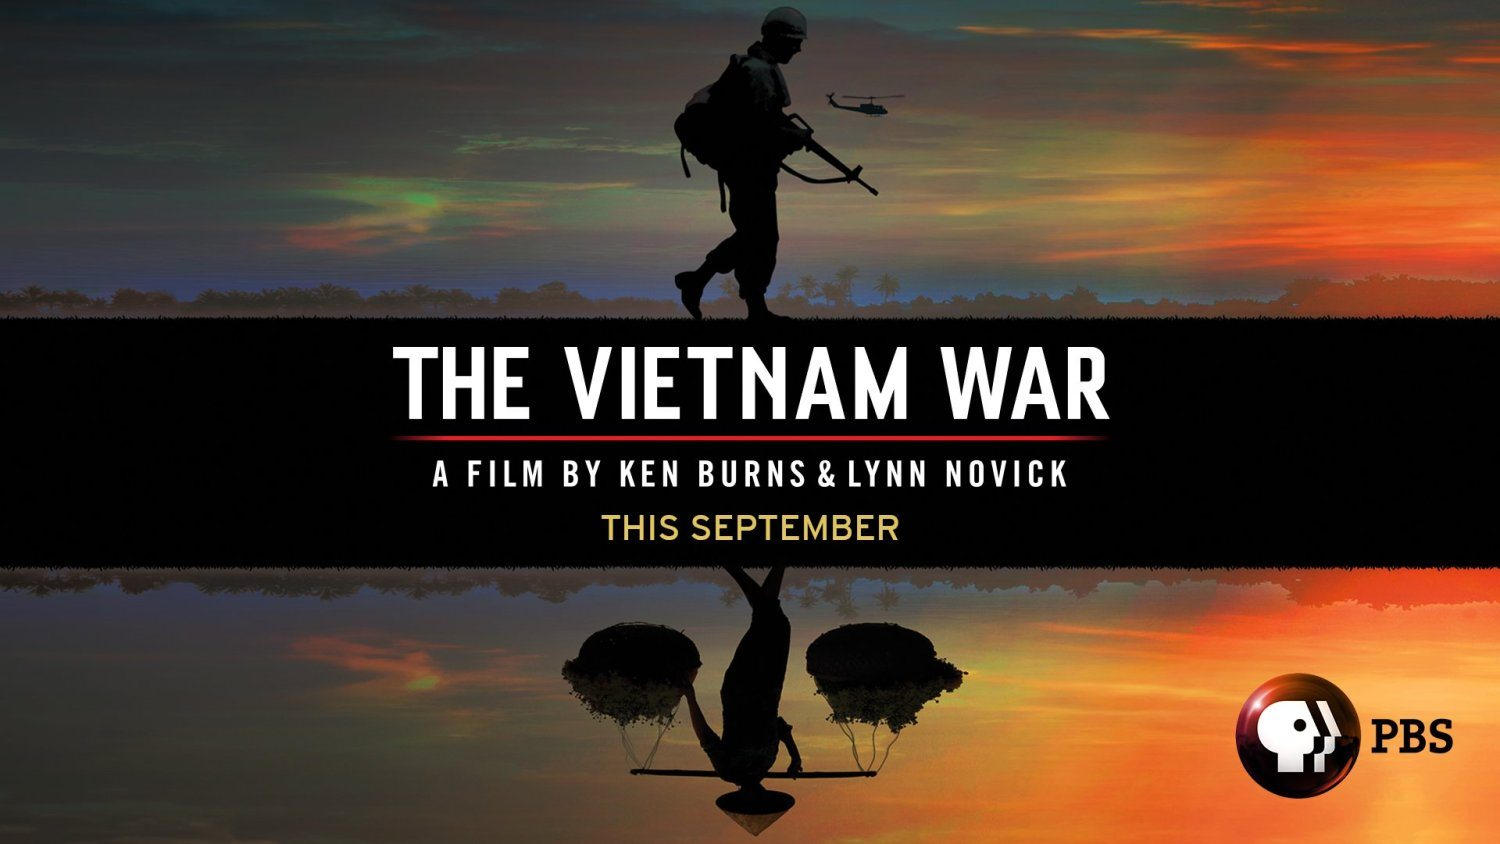 7 Things Parents Should Know About 'The Vietnam War' on PBS